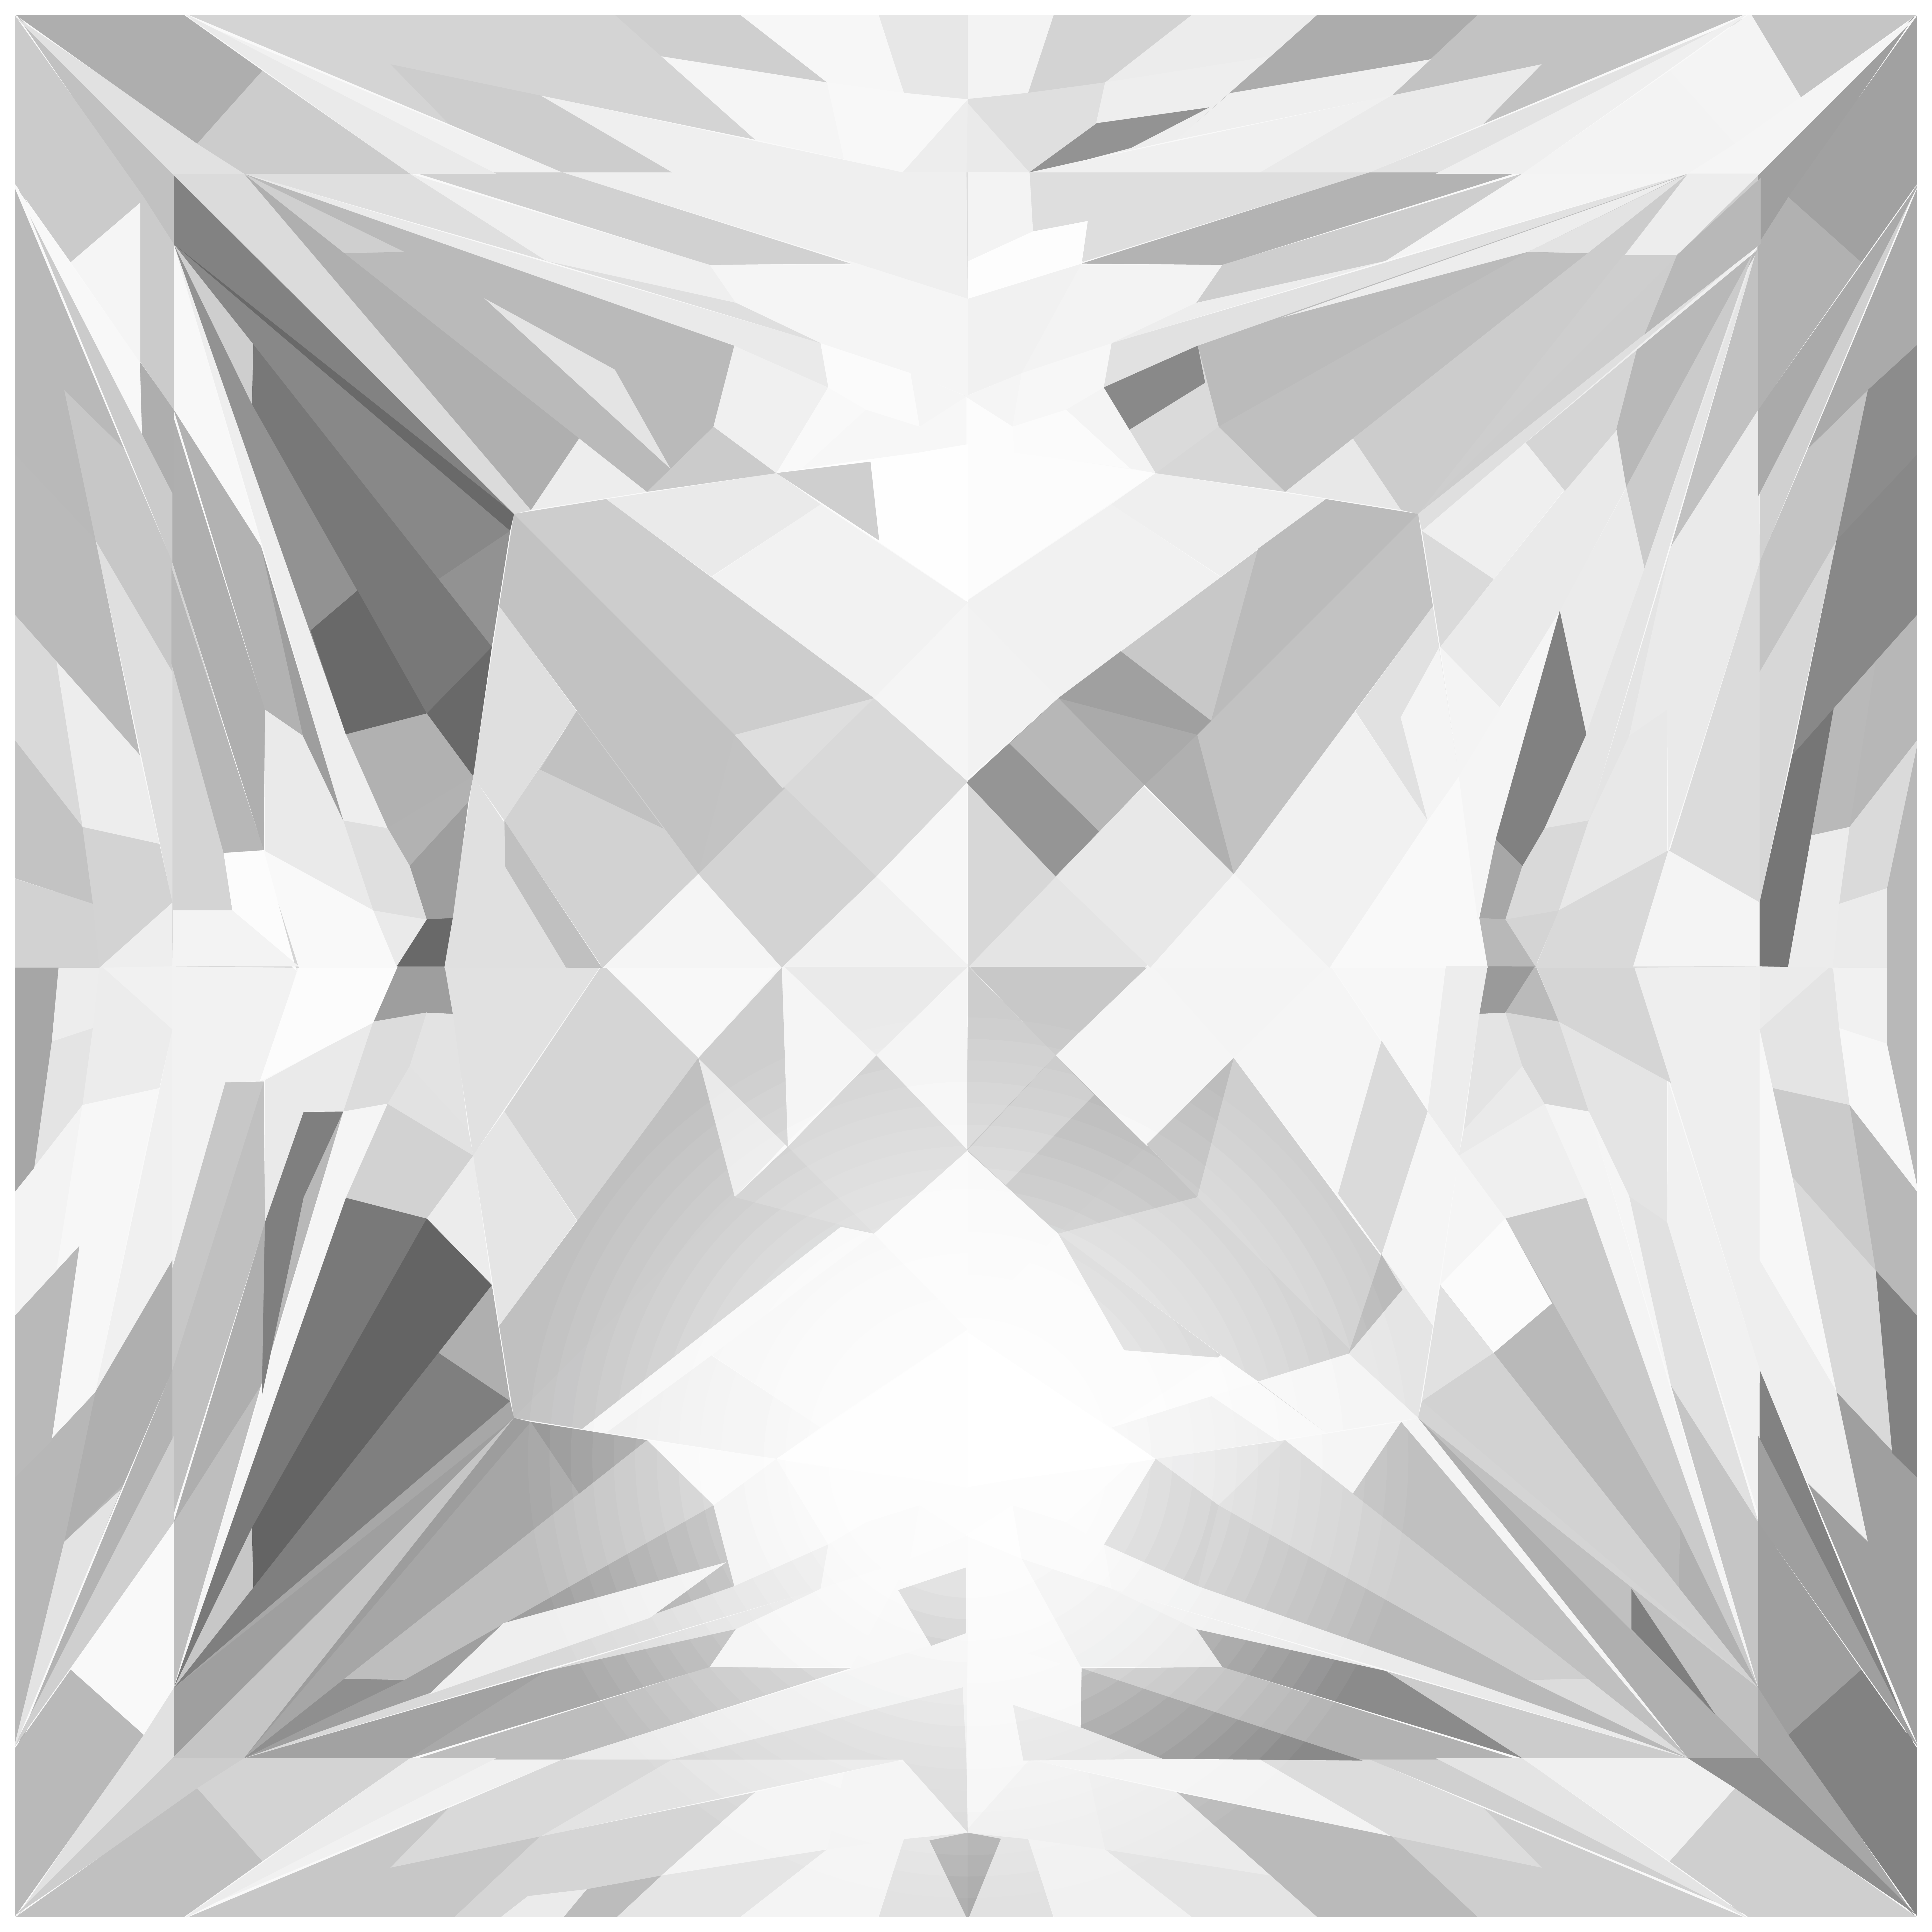 Transparent image gallery yopriceville. Clipart diamond square